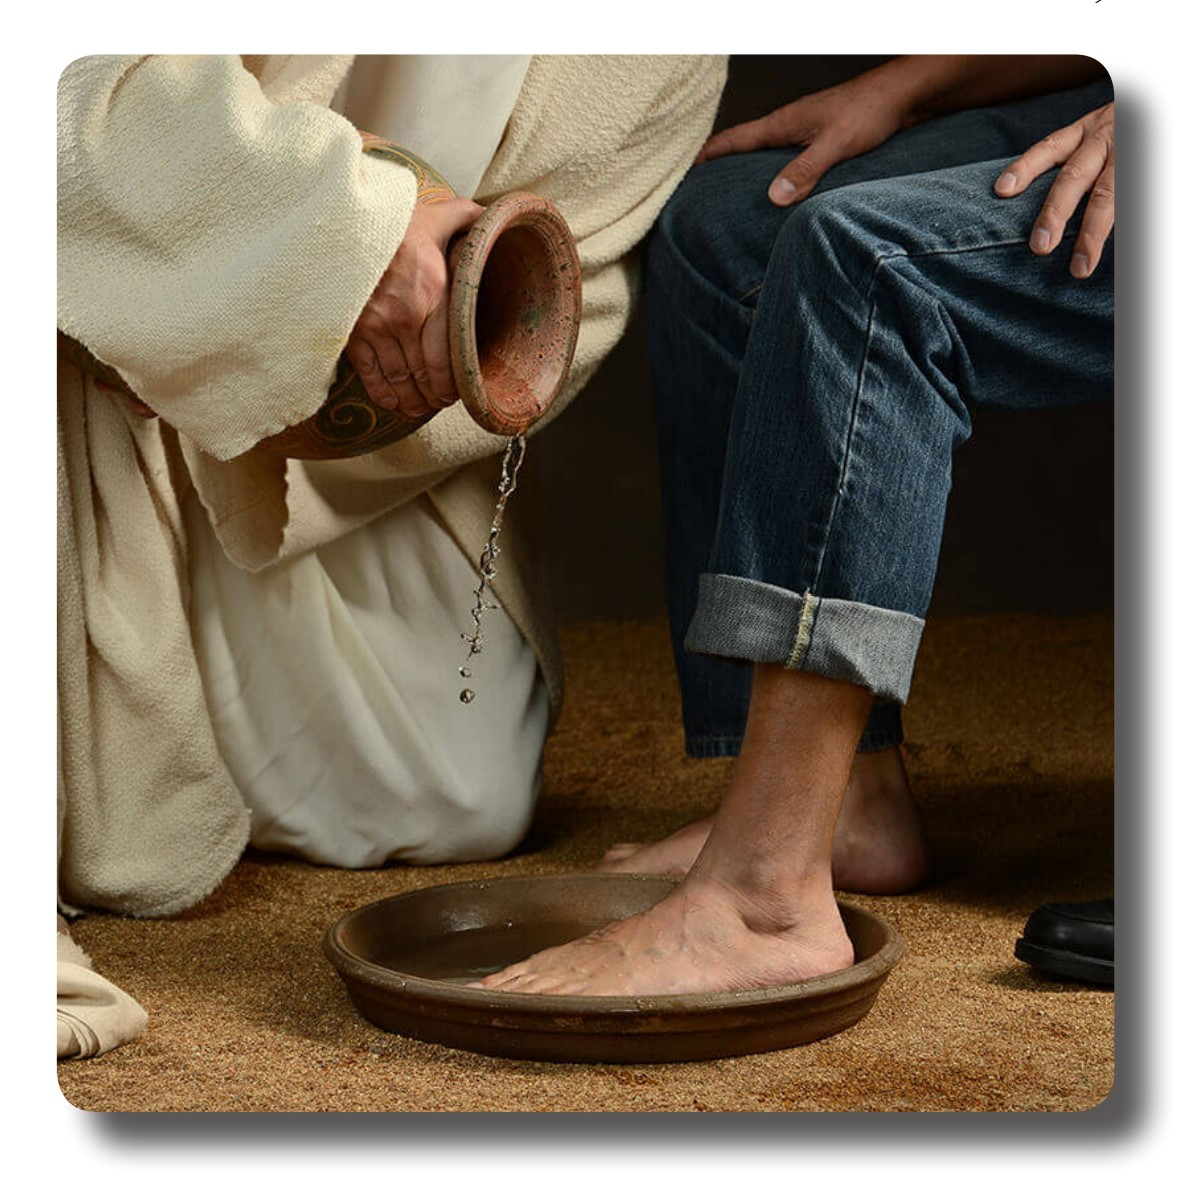 Confession Humility Article 2